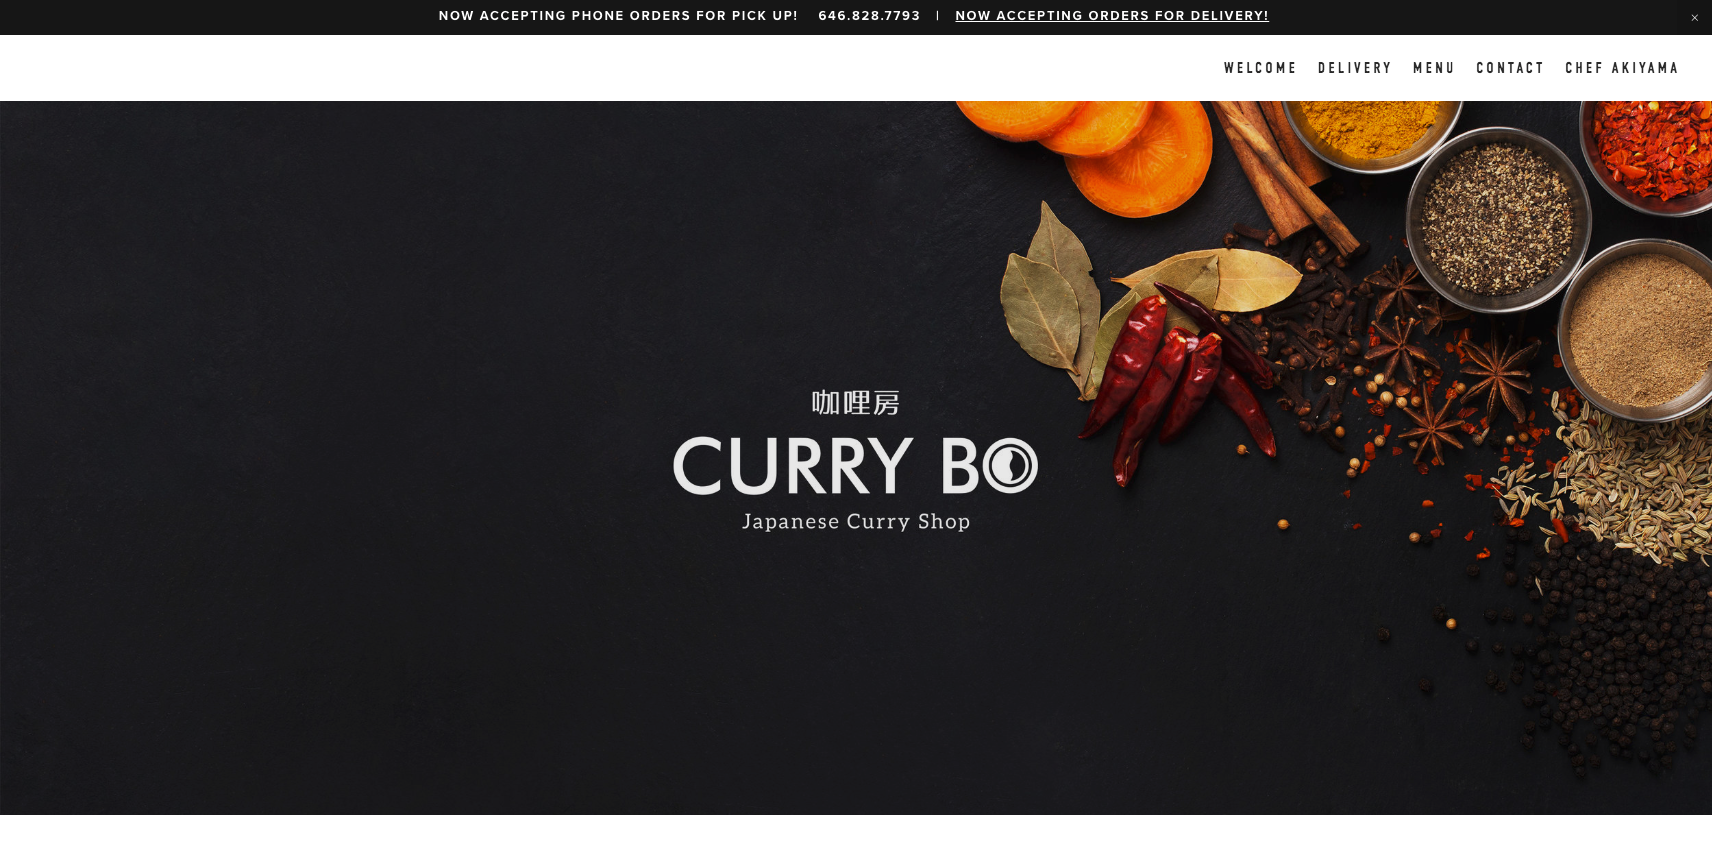 Curry Bo - Fast Casual